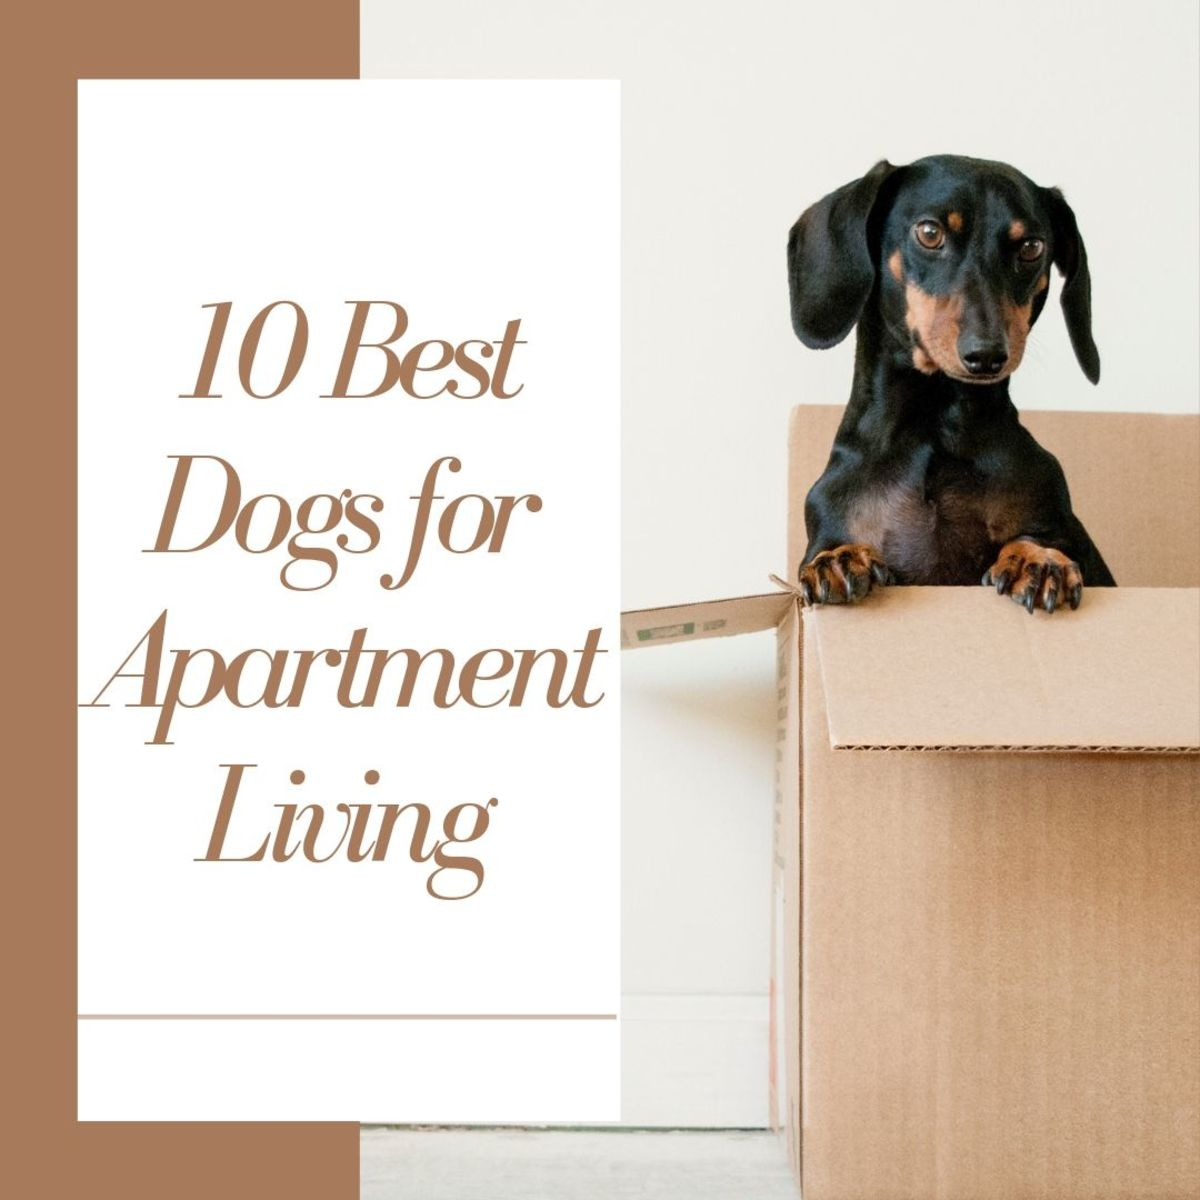 Best Dog Breeds For Apartments: The Canine Roommate: Top 10 Best Dog Breeds For Apartment